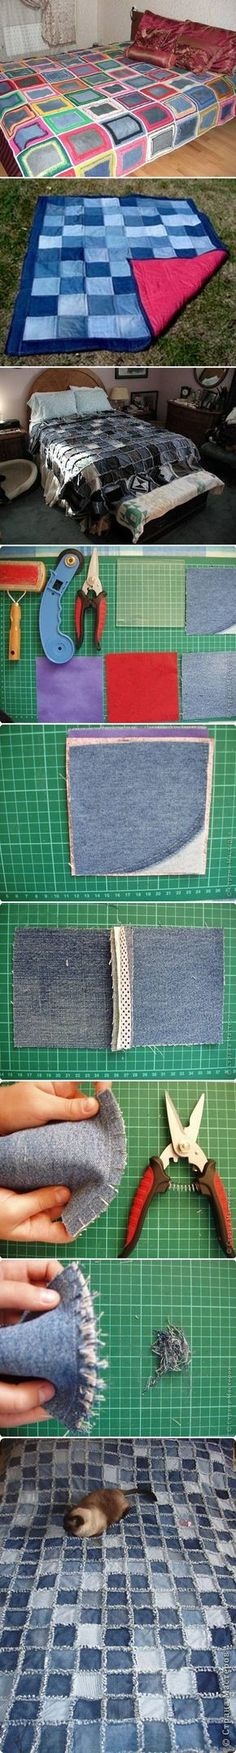 DIY Sew Denim Bedspread Recycled Upcycled denim old jeans RECICLAR REUTILIZAR VIEJOS PANTALONES TEJANOS COLCHAS PATCHWORK